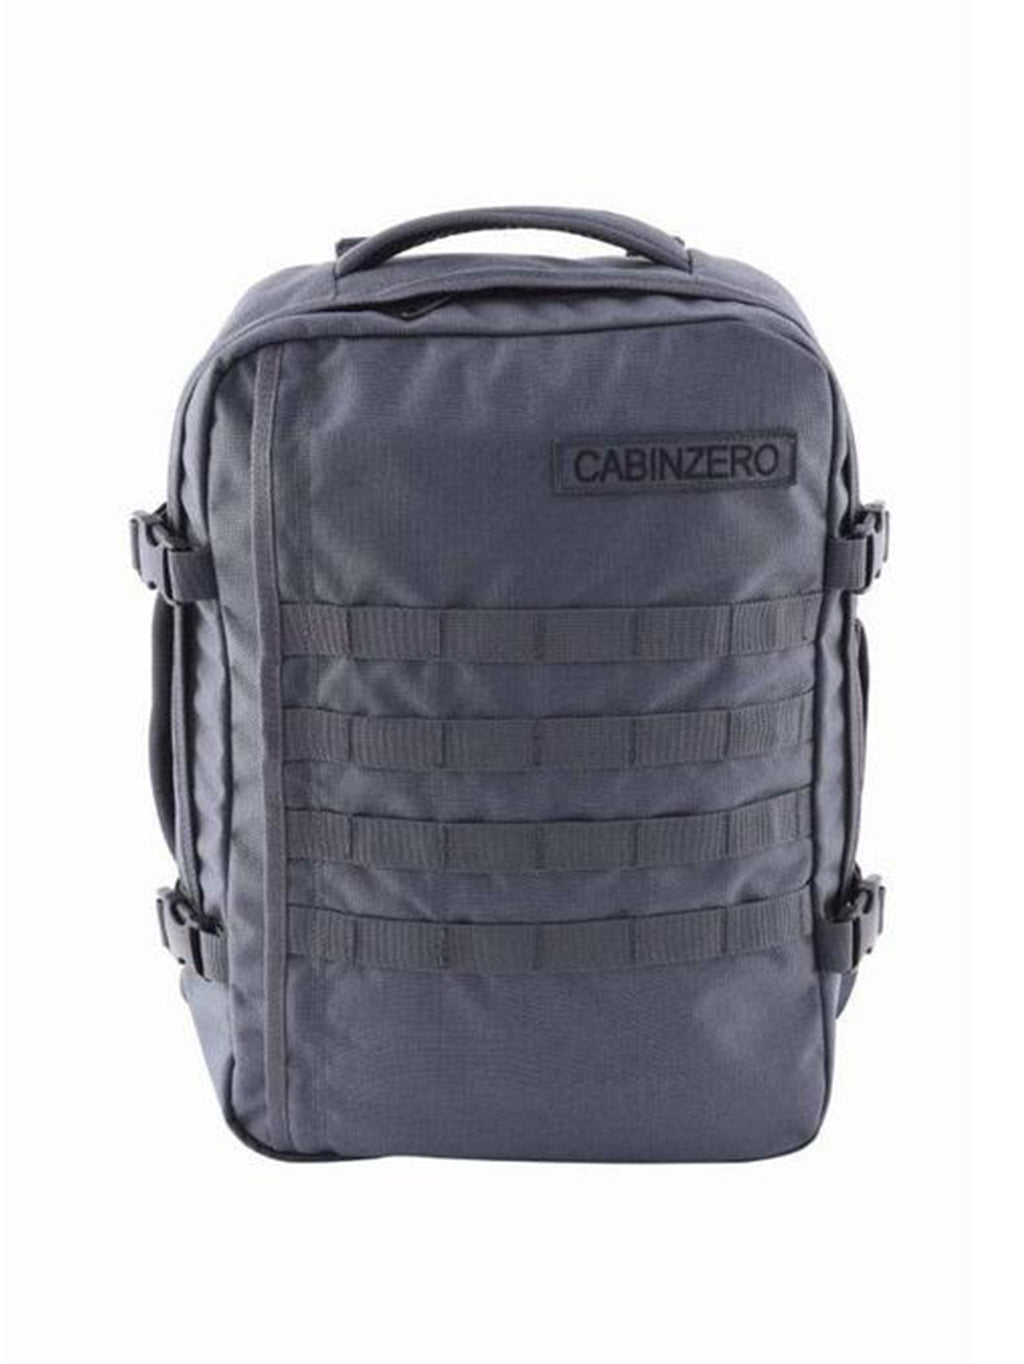 Cabinzero Military 28L in Military Grey Color - This Is For Him